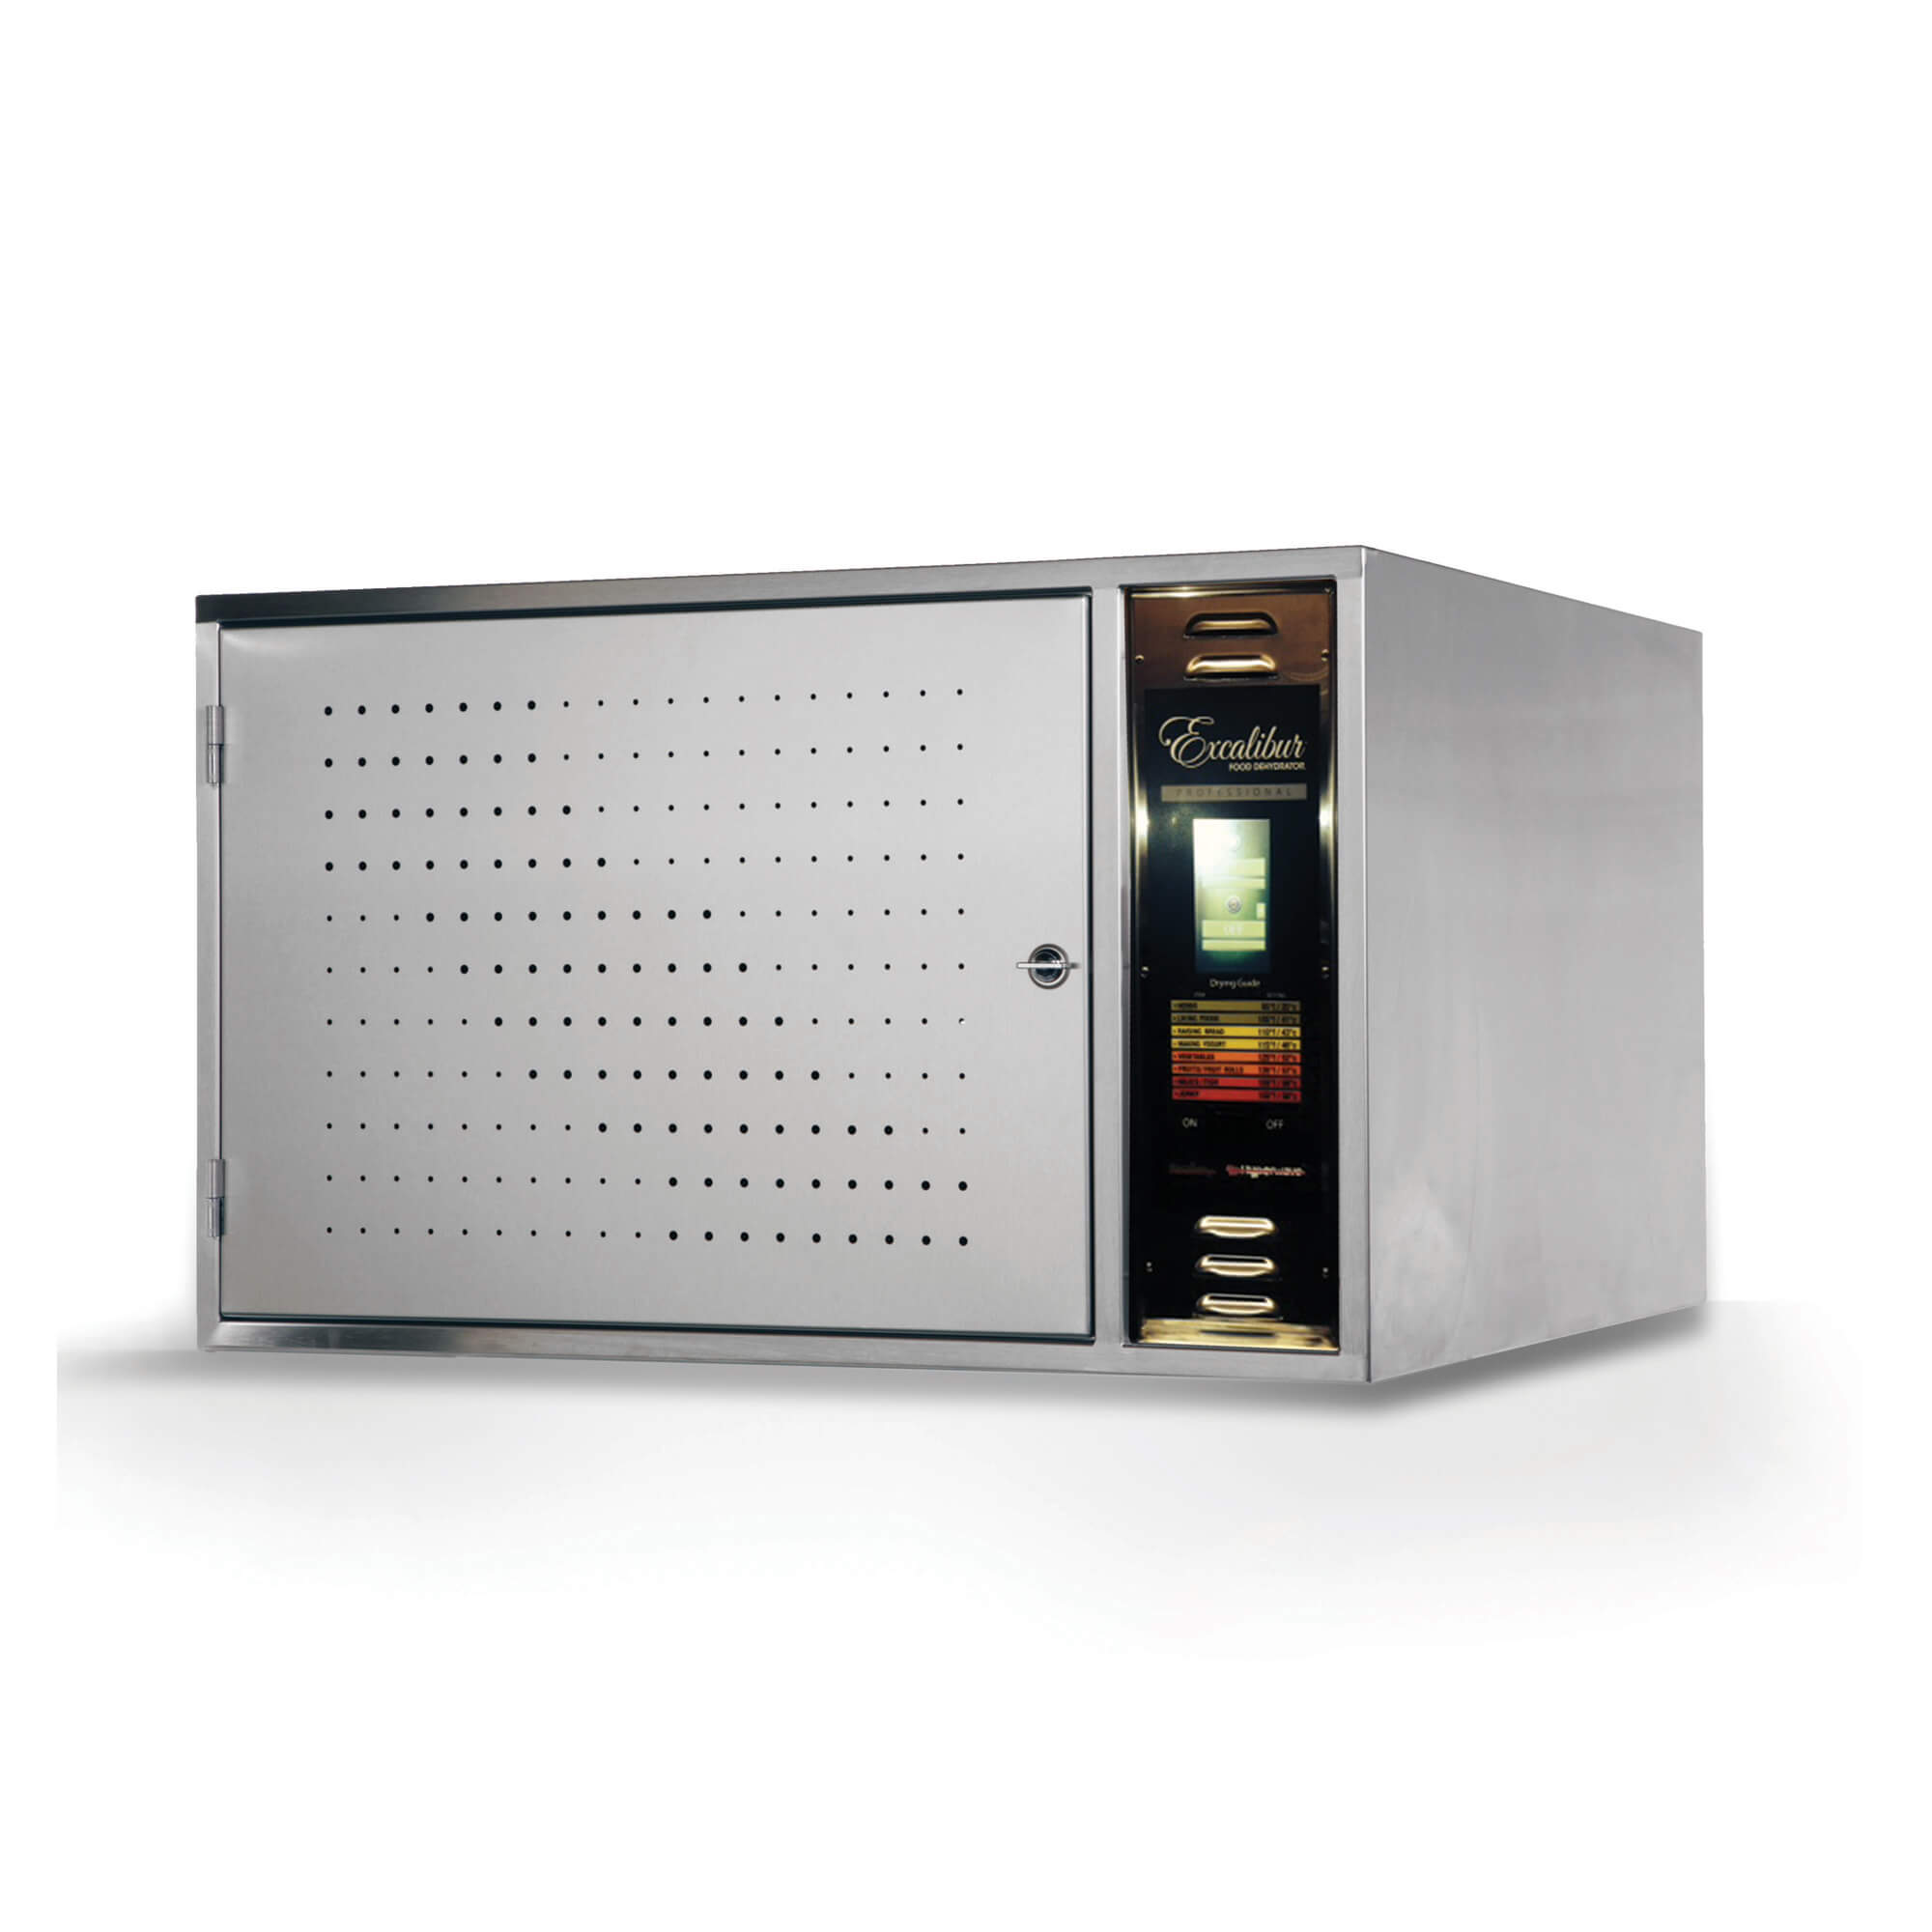 Excalibur COMM1 12 tray stainless steel commercial digital dehydrator with door closed.